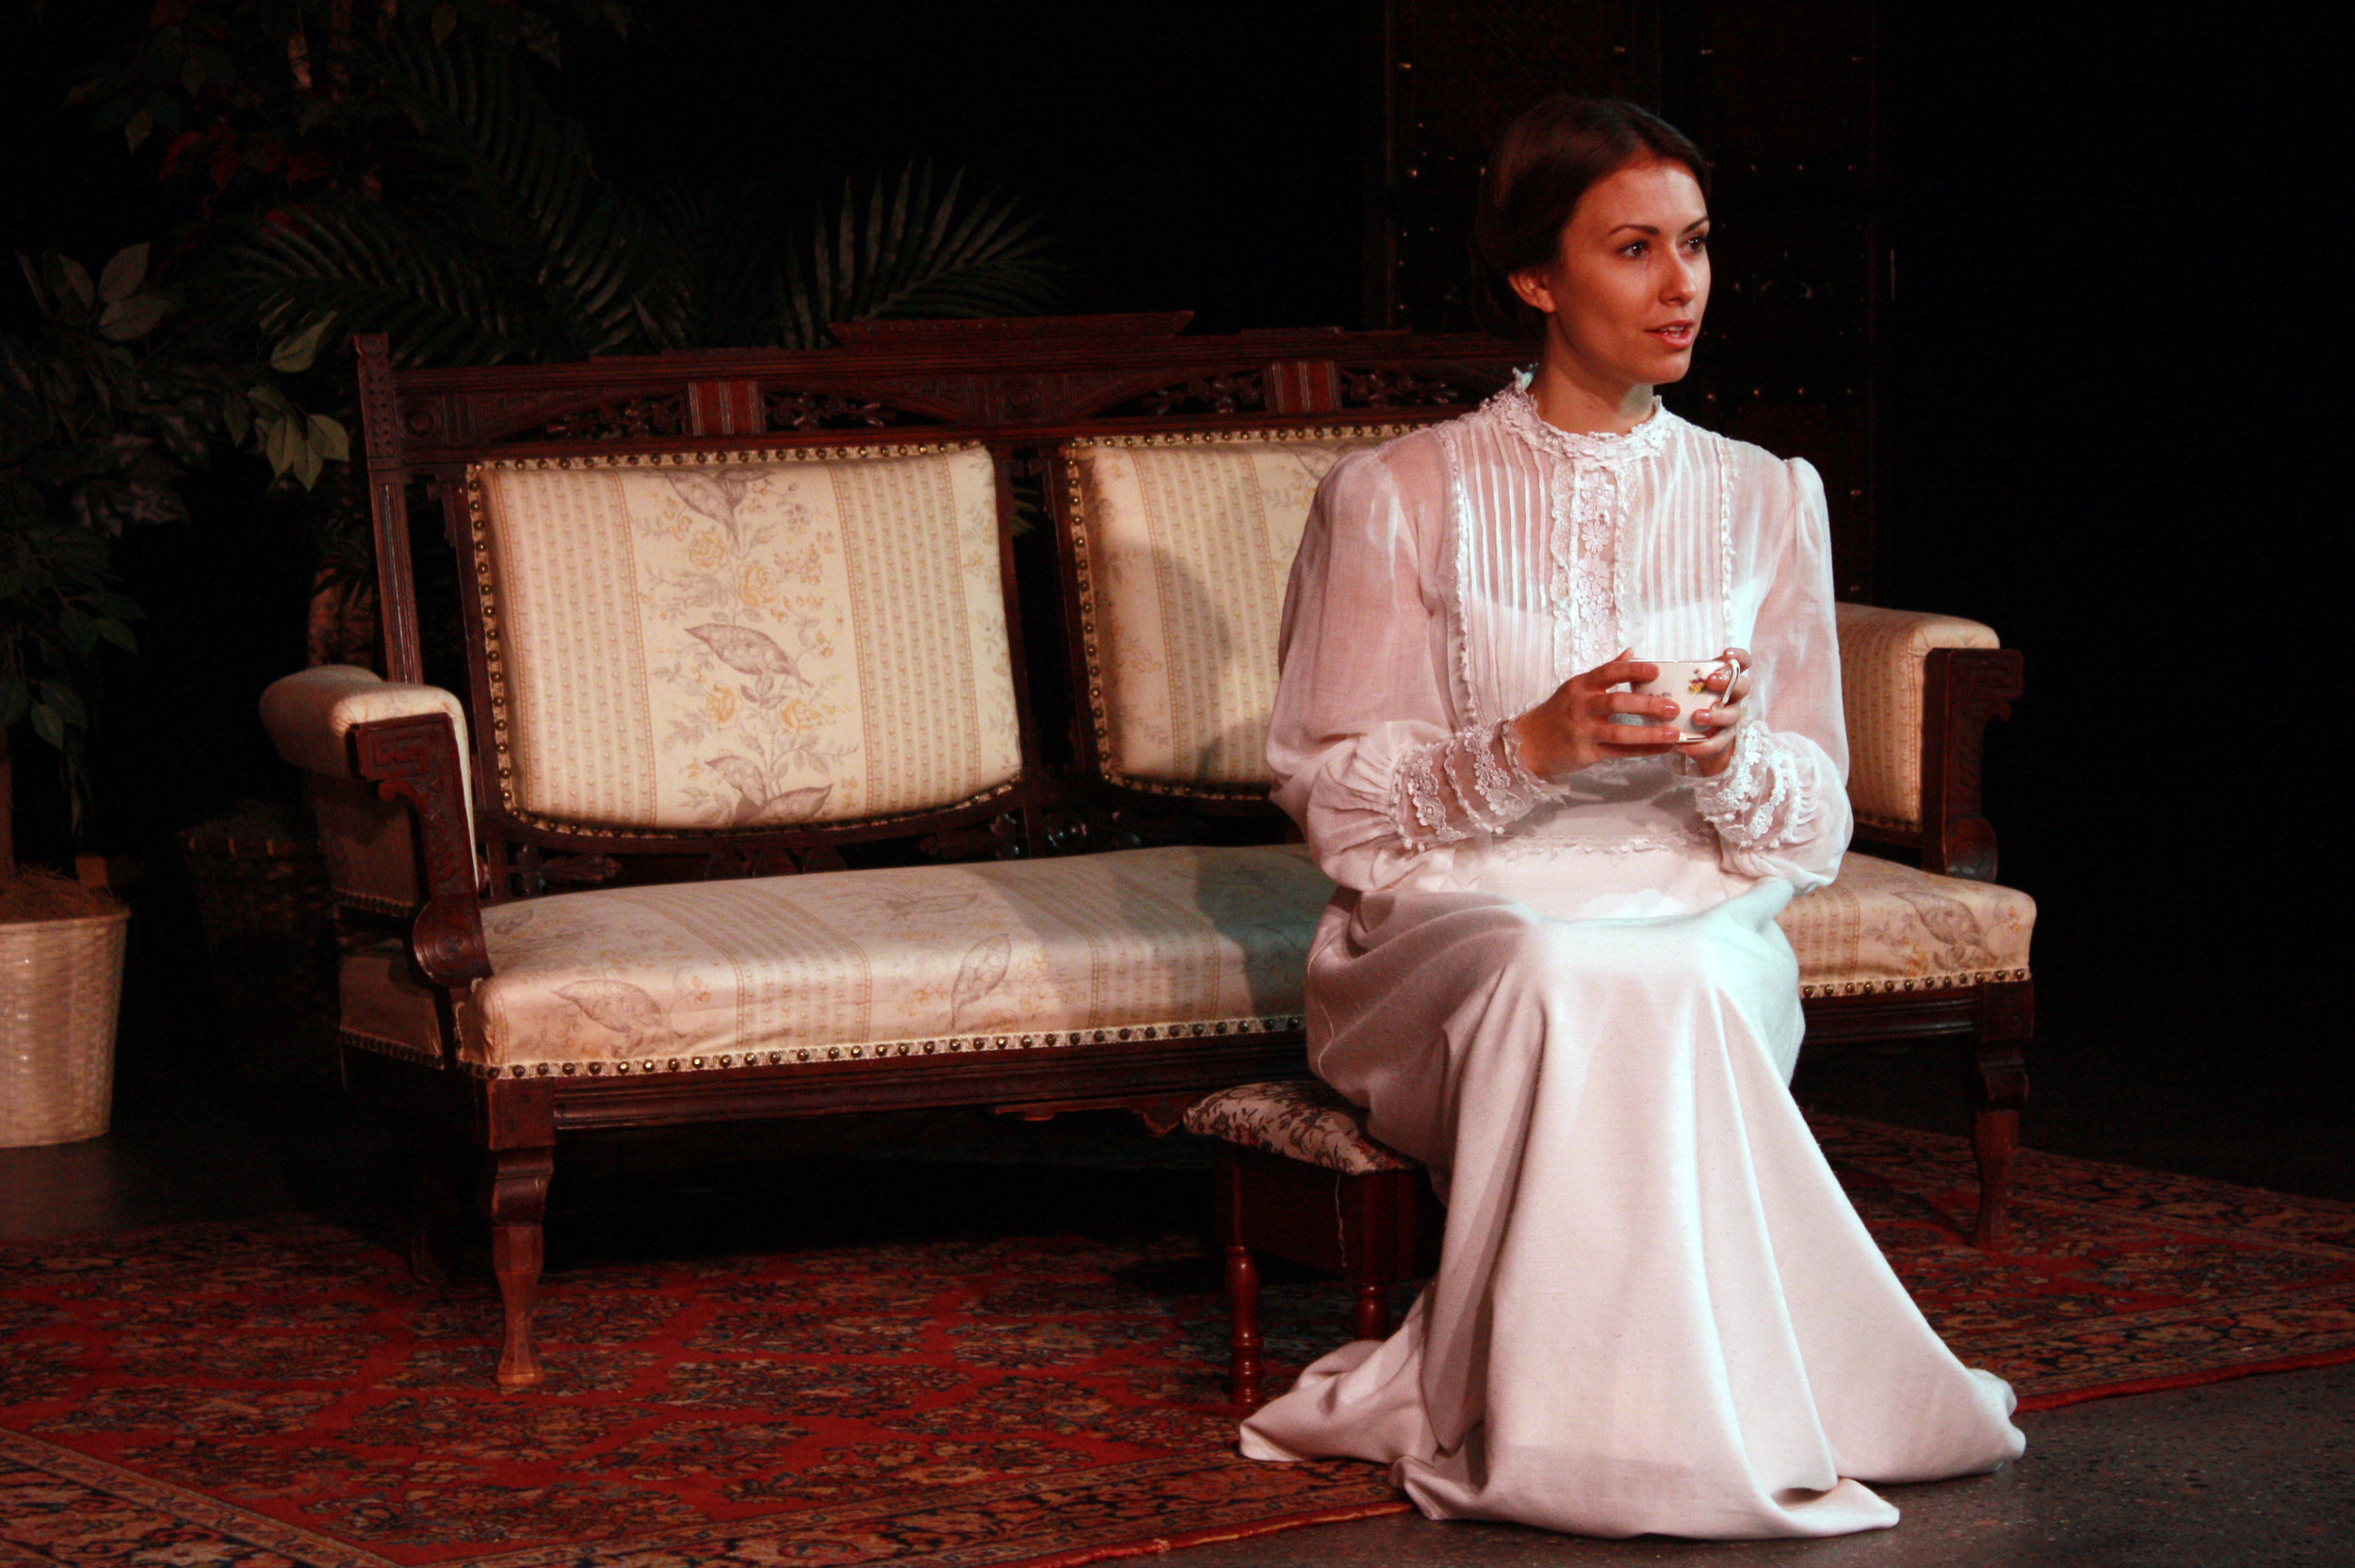 The Belle of Amherst (Cabrini Theatre)